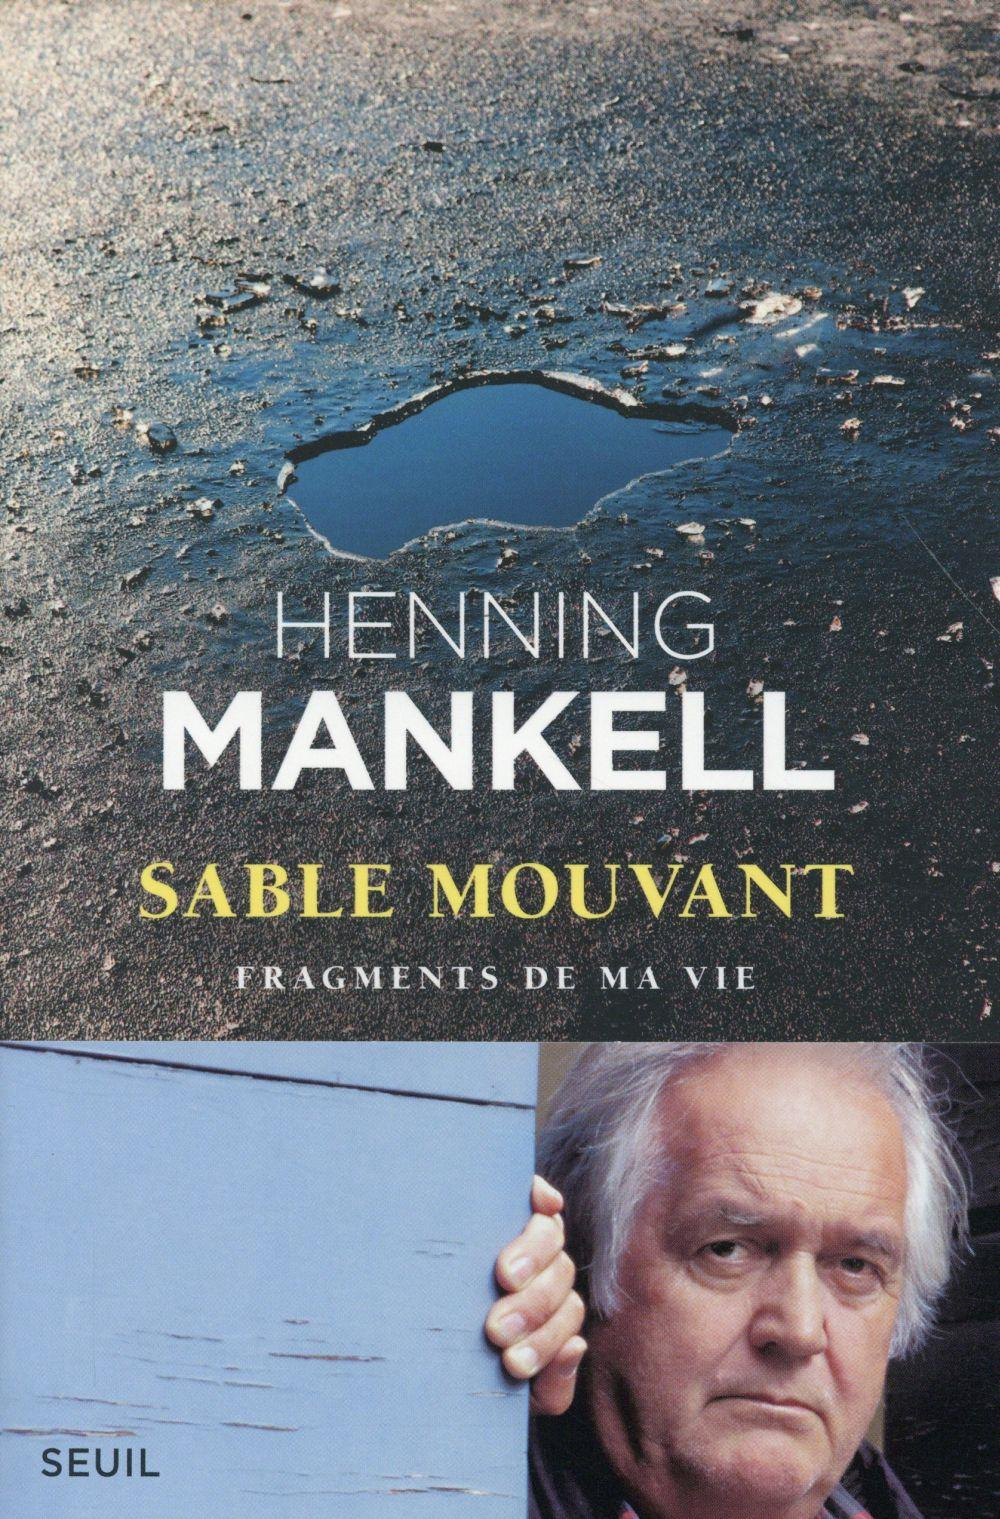 Sable mouvant, fragments de ma vie